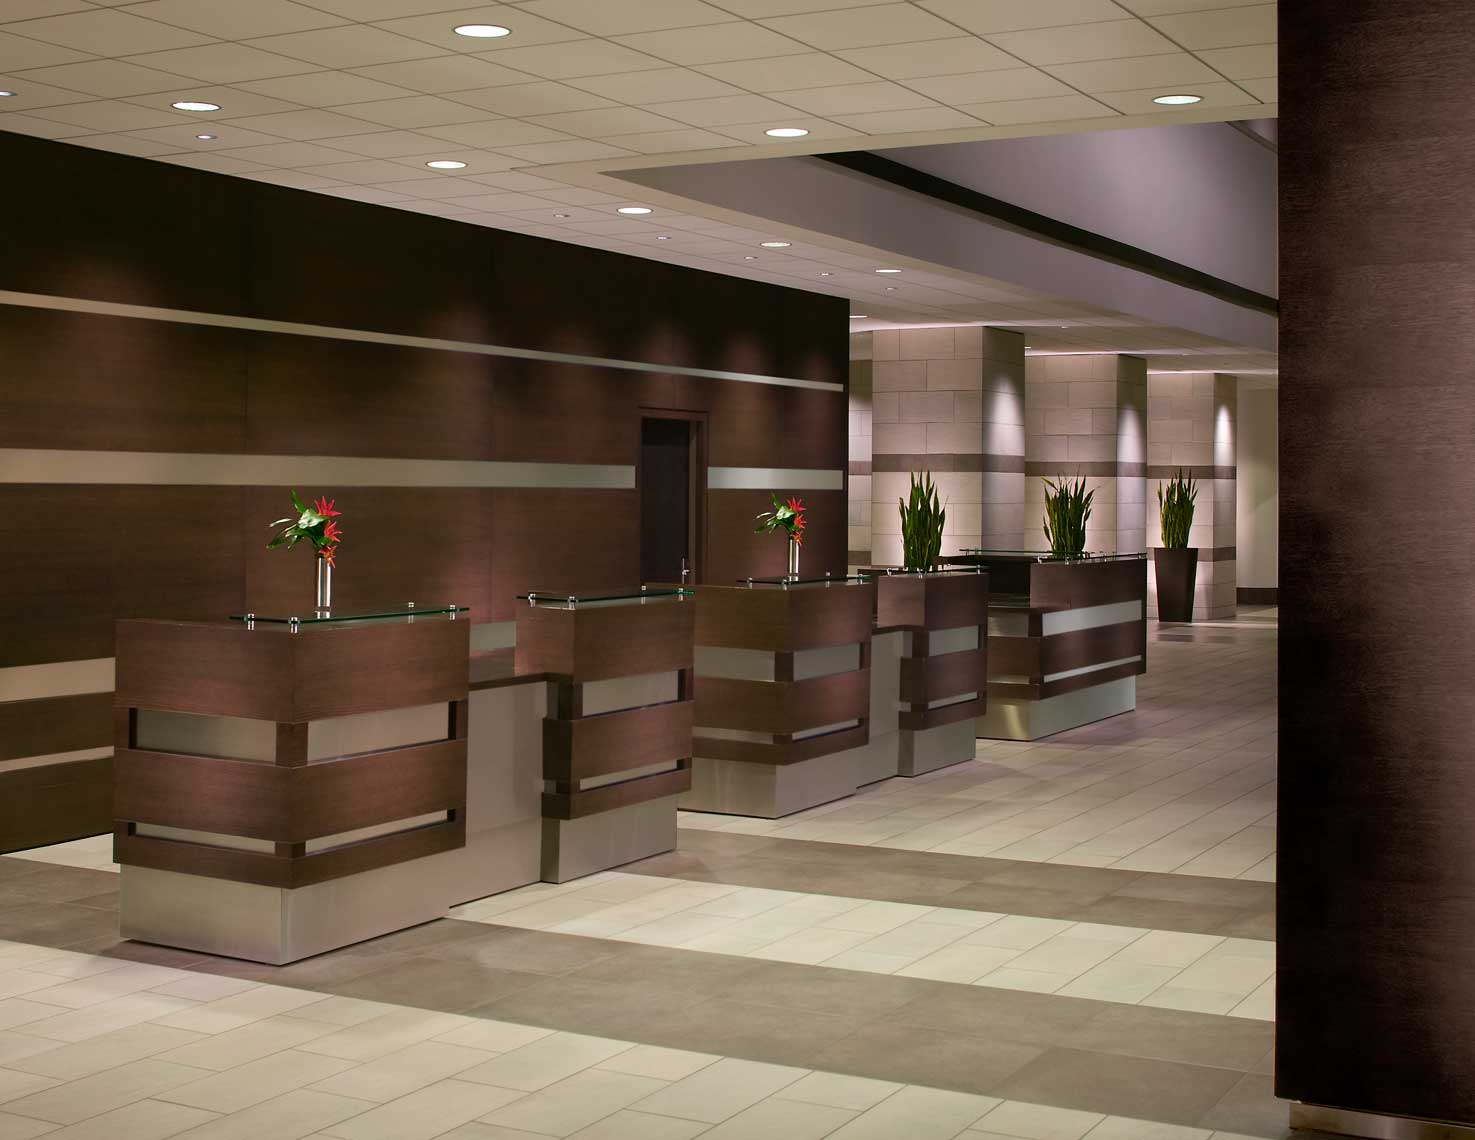 A sleek and inviting view of the reception desk at the Hyatt Regency Indianapolis